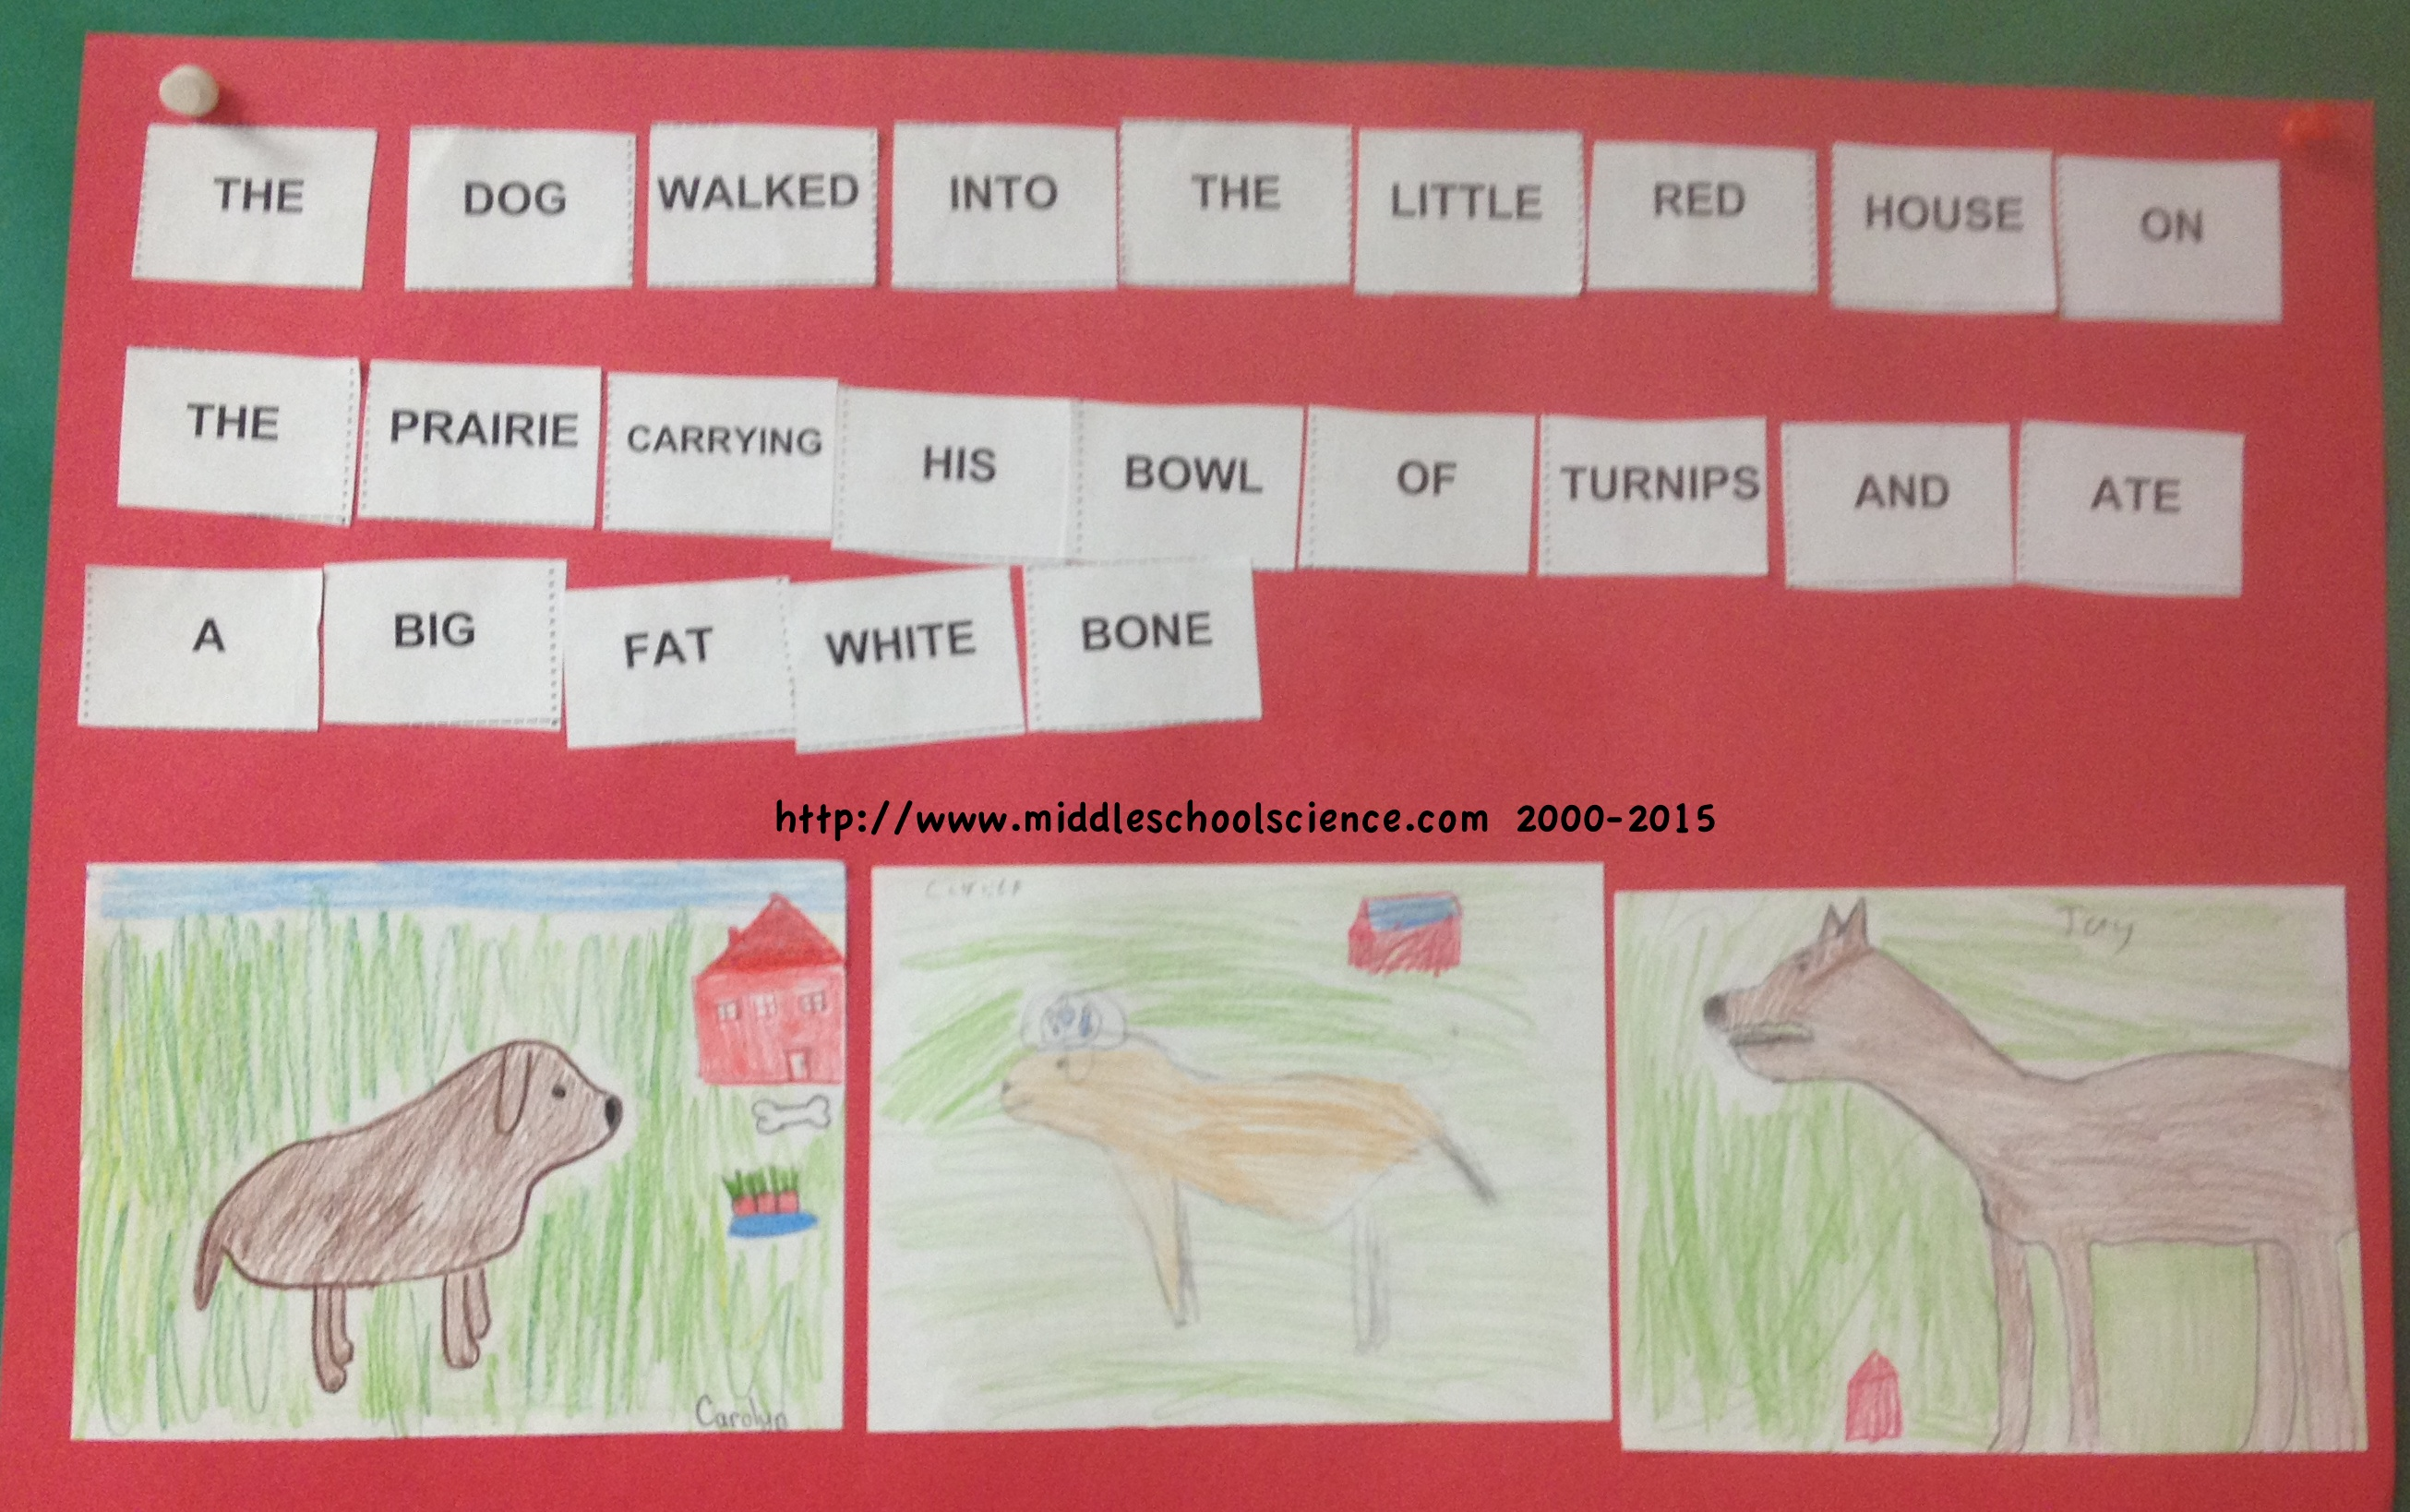 Dogs And Turnips D Amp T Activity Middle School Science Blog